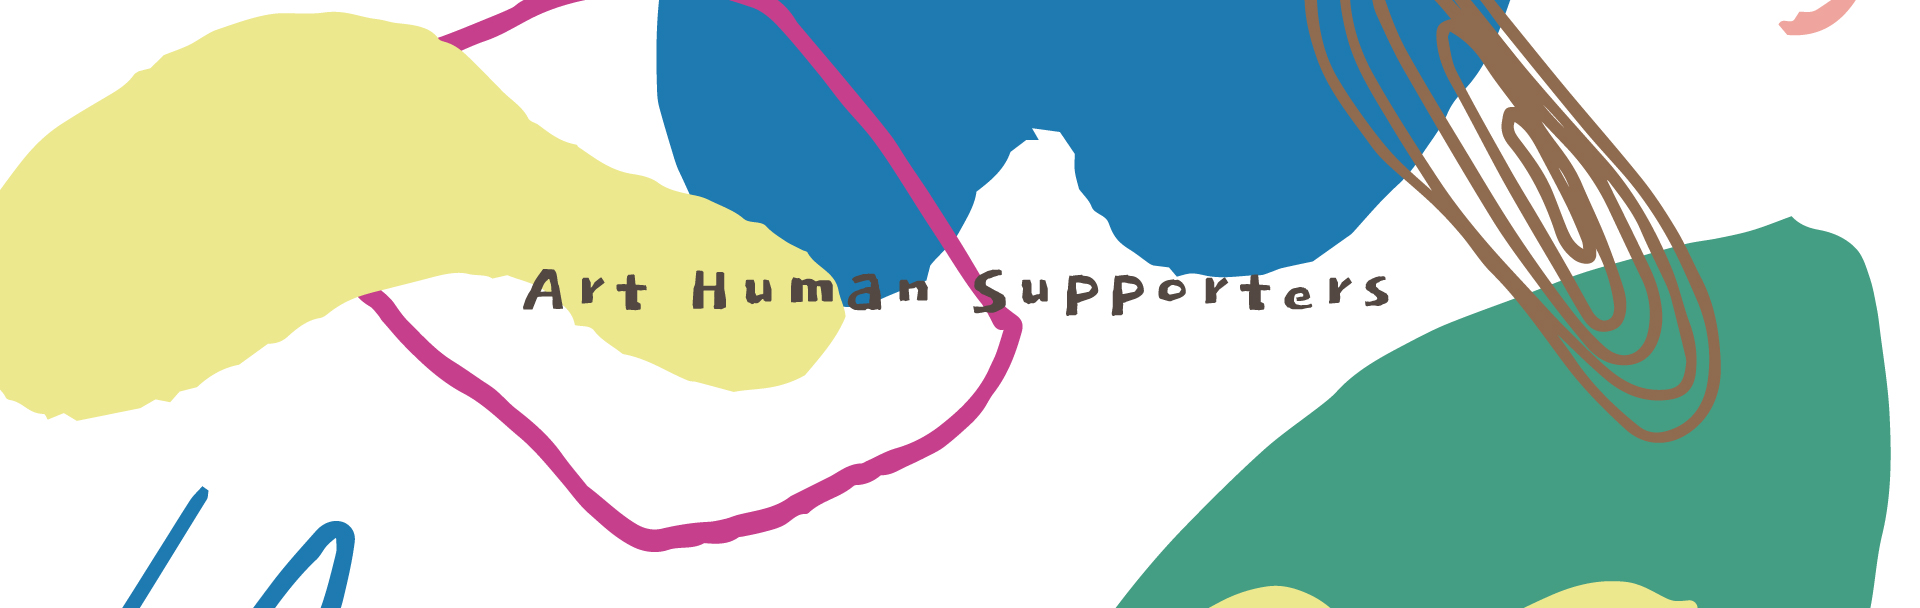 Art Human Supporters